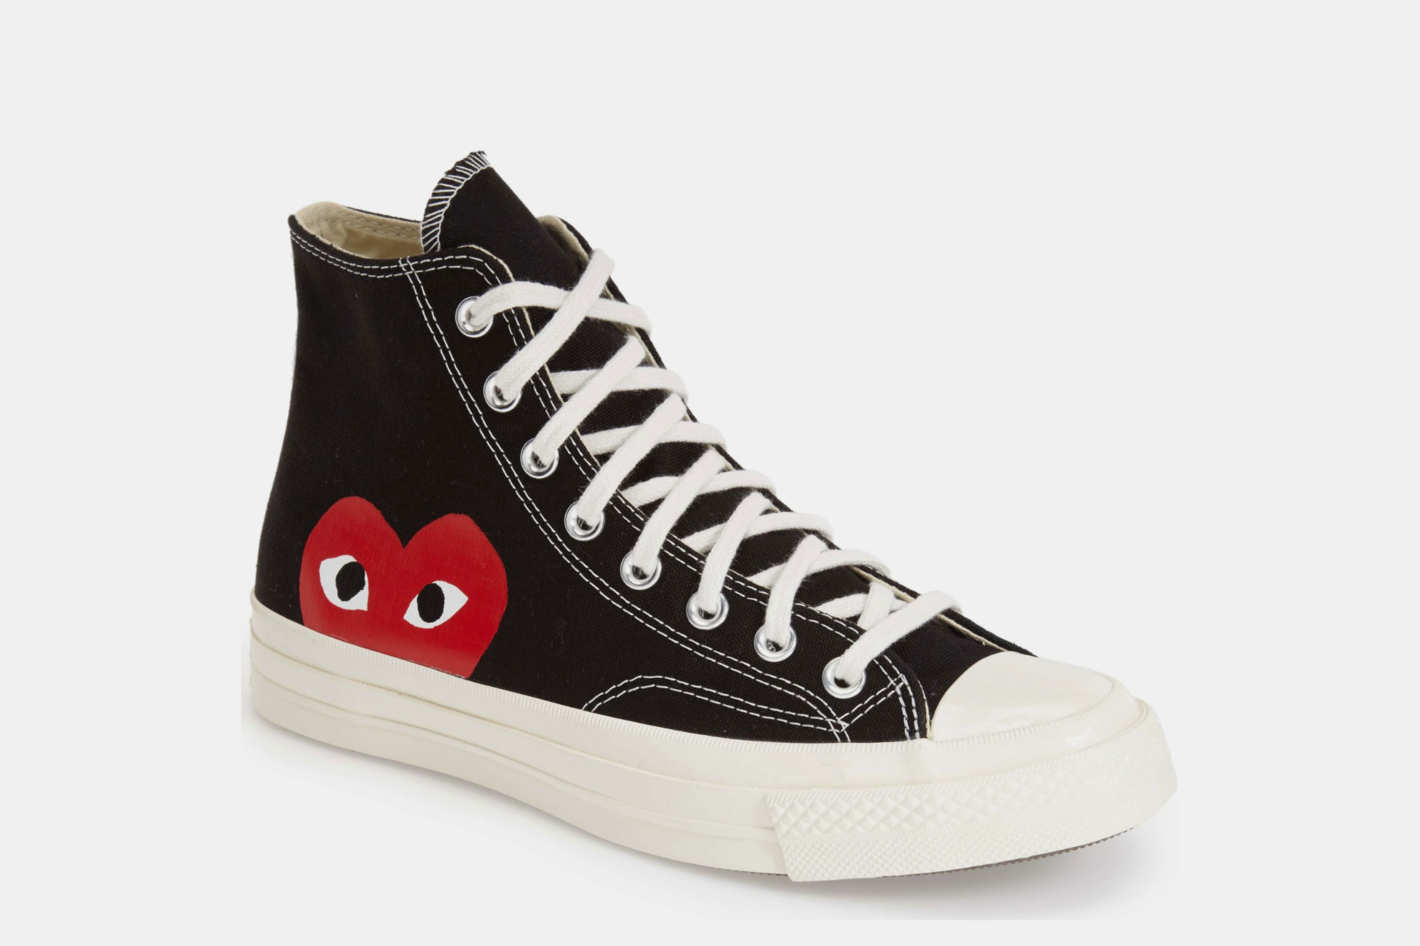 Comme des Garçons PLAY x Chuck Taylor Hidden Heart High Top Sneaker